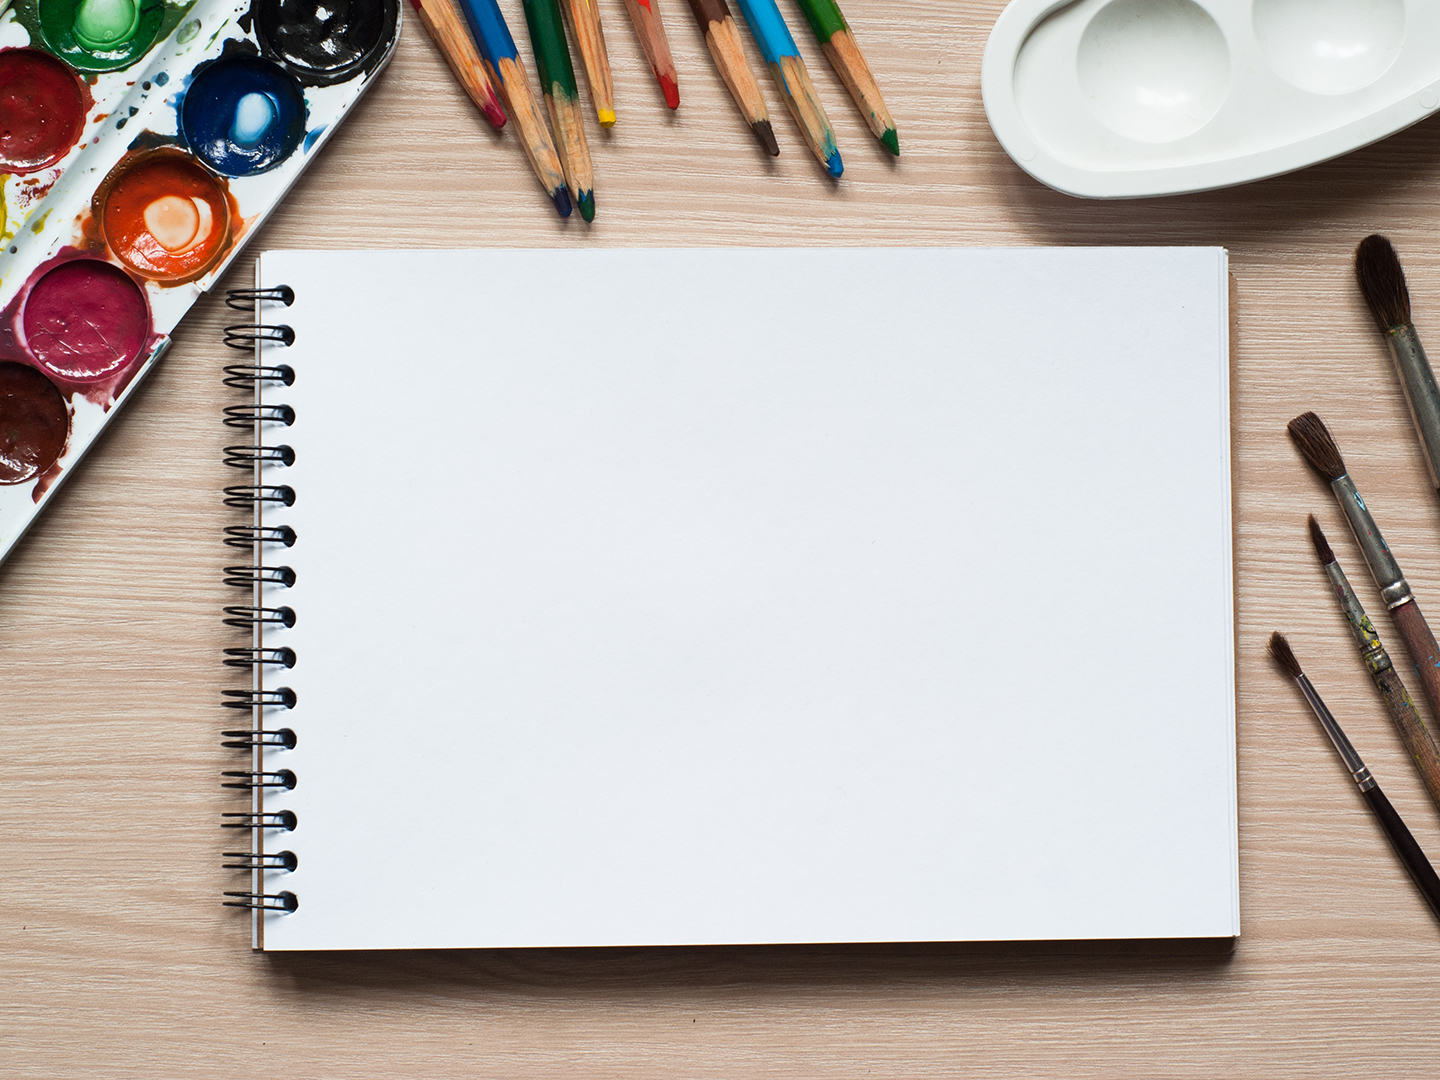 The Best Drawing Pads to Inspire the Little Artist In Your Life